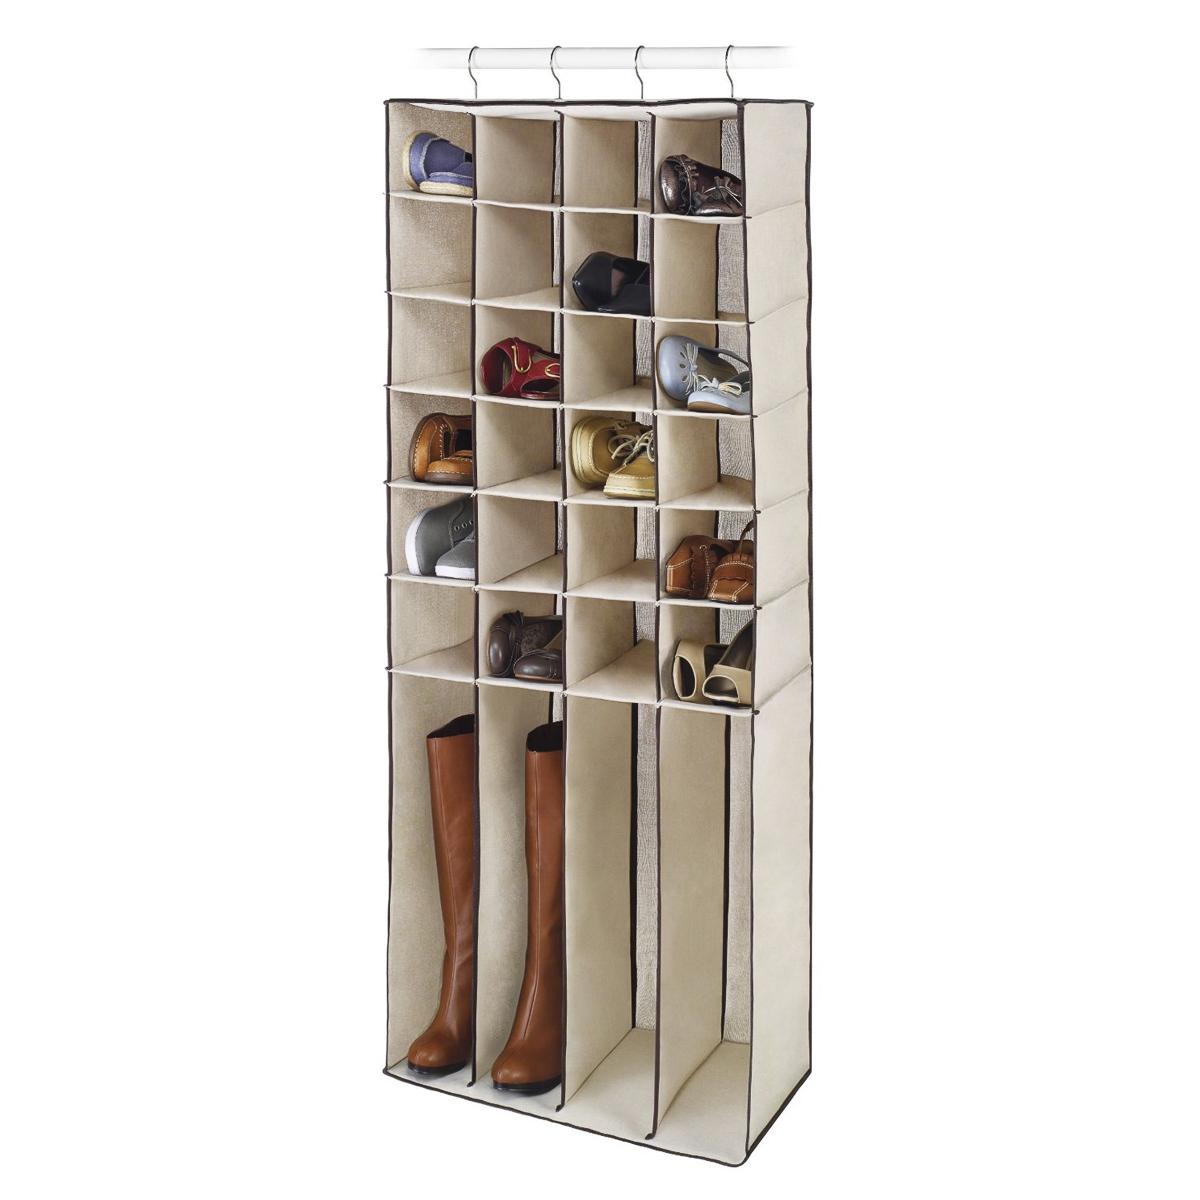 Whitmor 28-Pocket Hanging Closet Organizer Shoes Boots Canvas Storage 6687-4443